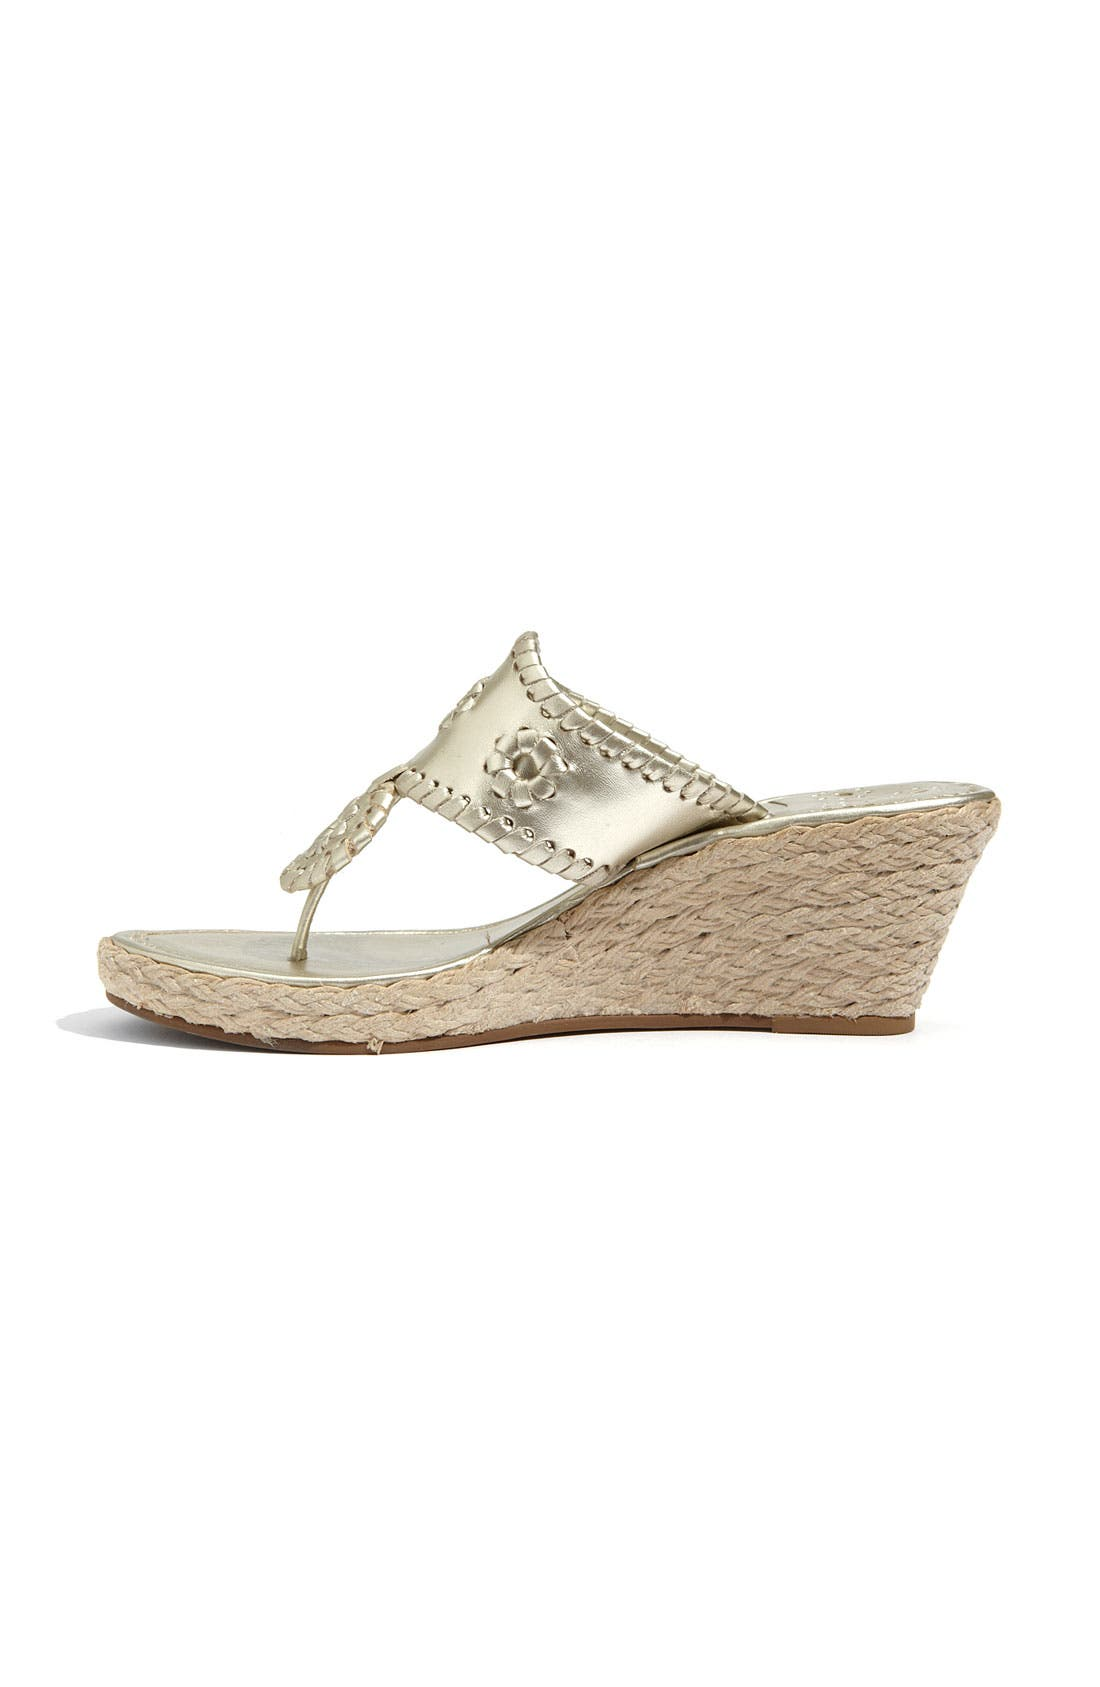 'Marbella' Rope Wedge Sandal,                             Alternate thumbnail 4, color,                             042